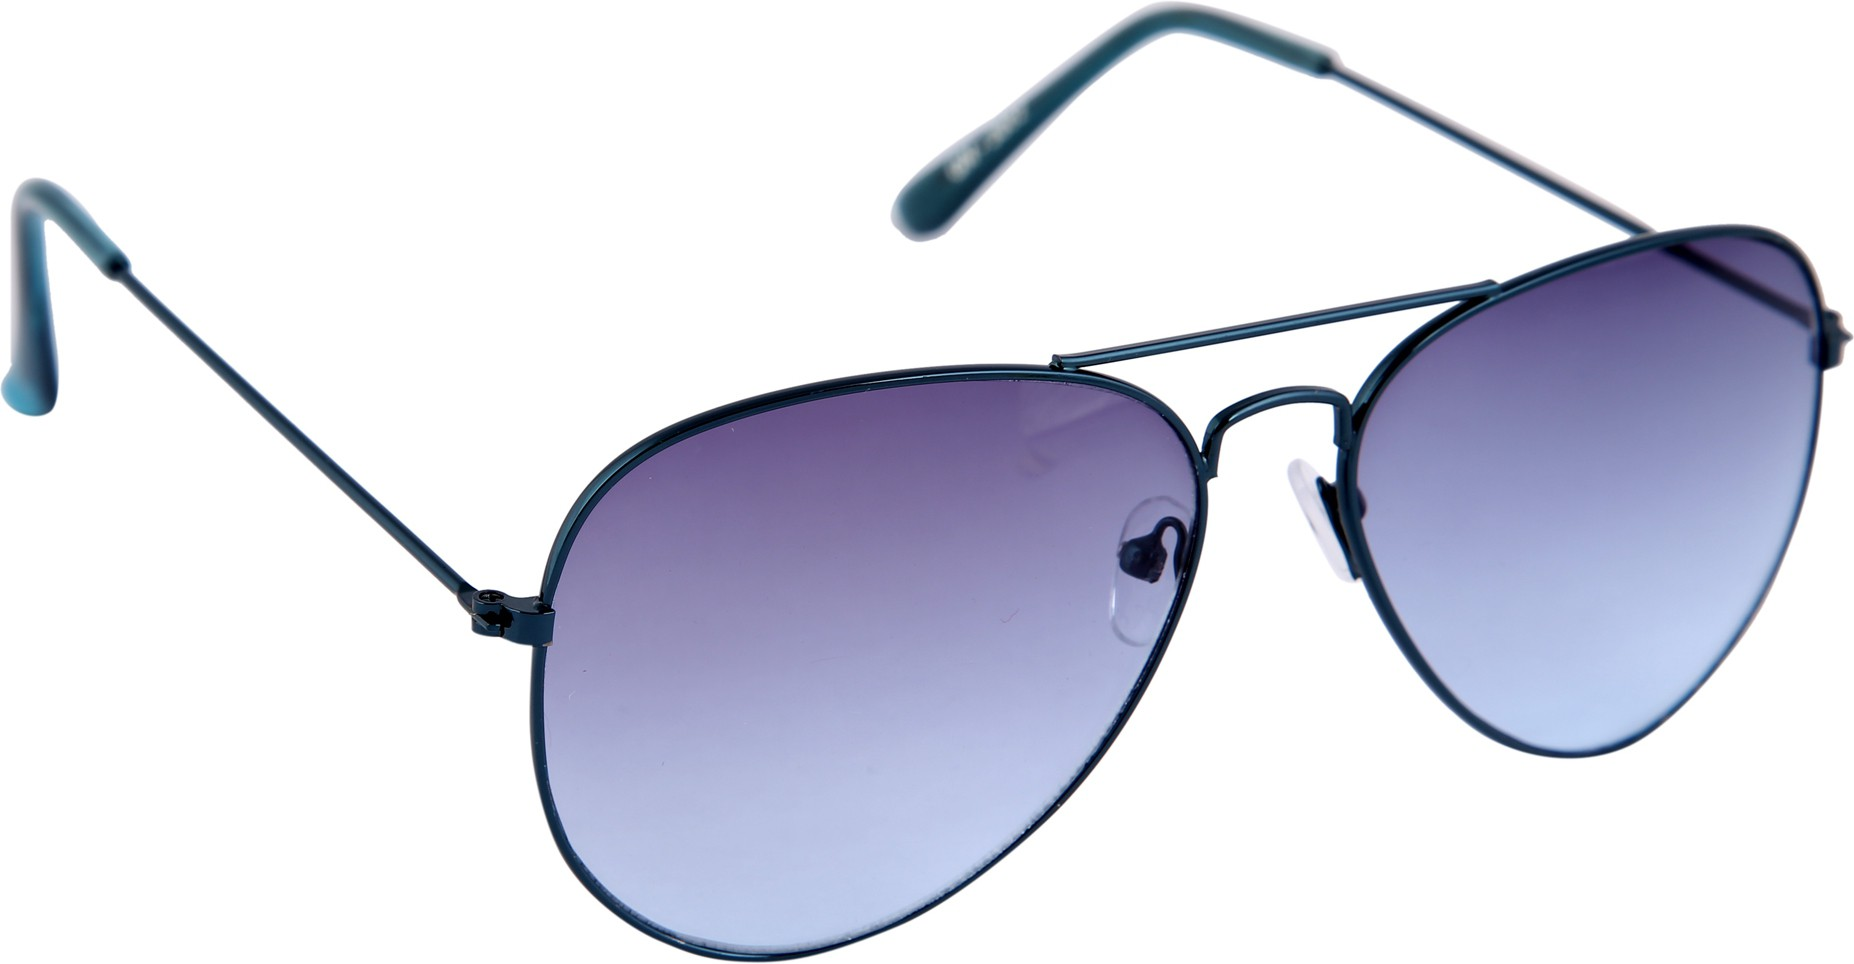 Deals - Delhi - Gansta, Beqube... <br> Sunglasses<br> Category - sunglasses<br> Business - Flipkart.com